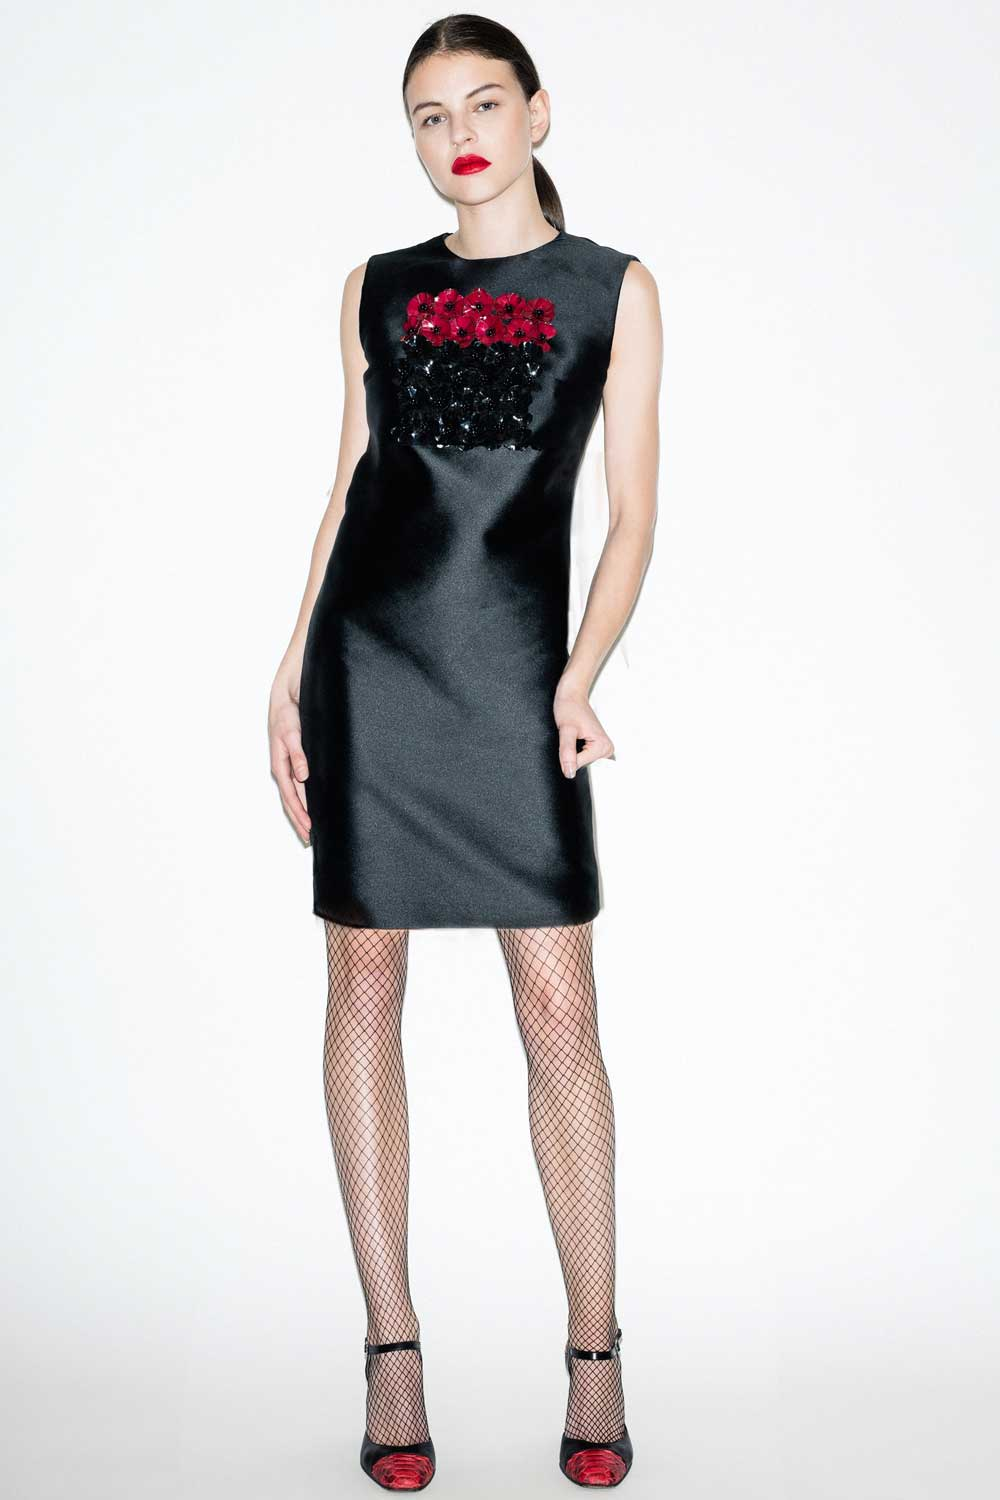 fflag-robe-poppies-faille-ornement-fleurs-sequins-bicolore2